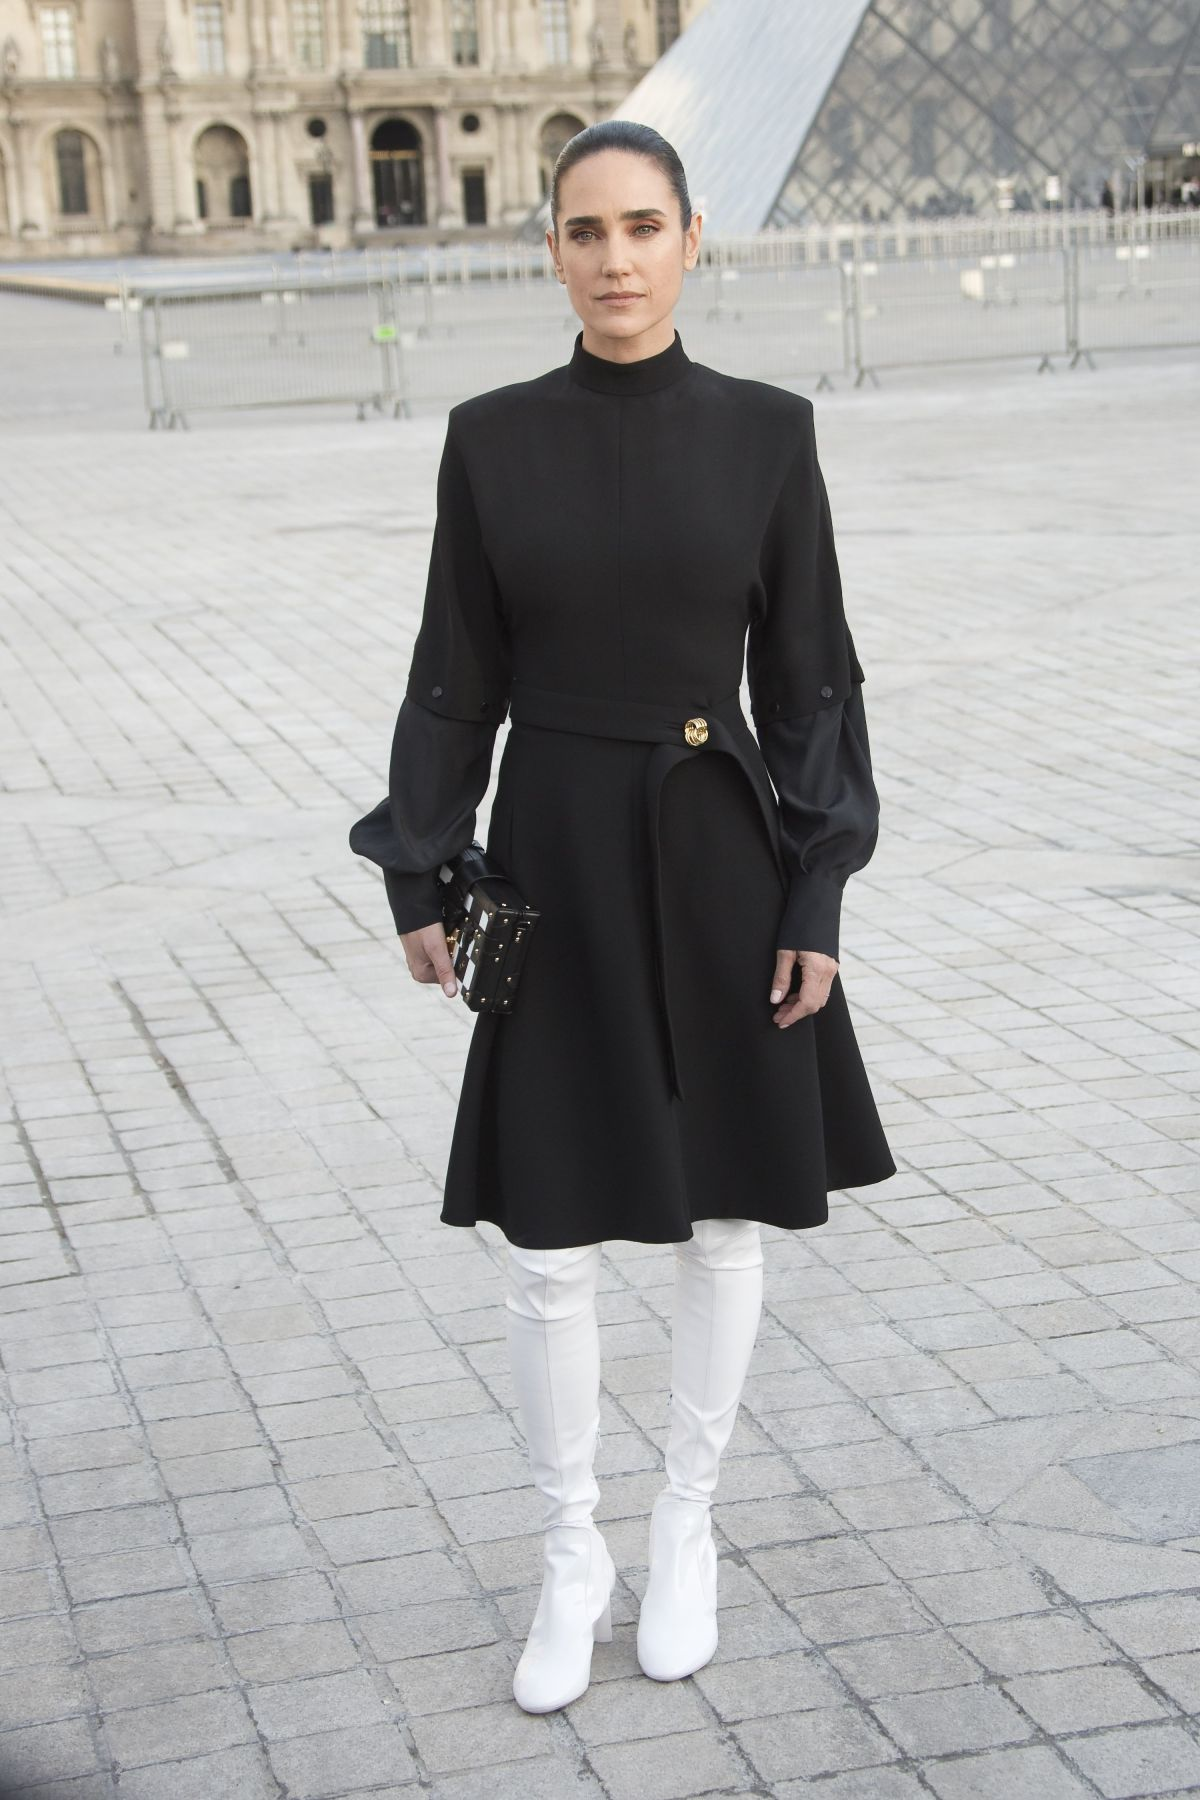 Jennifer Connelly At Chanel Fashion Show In Paris 03 07